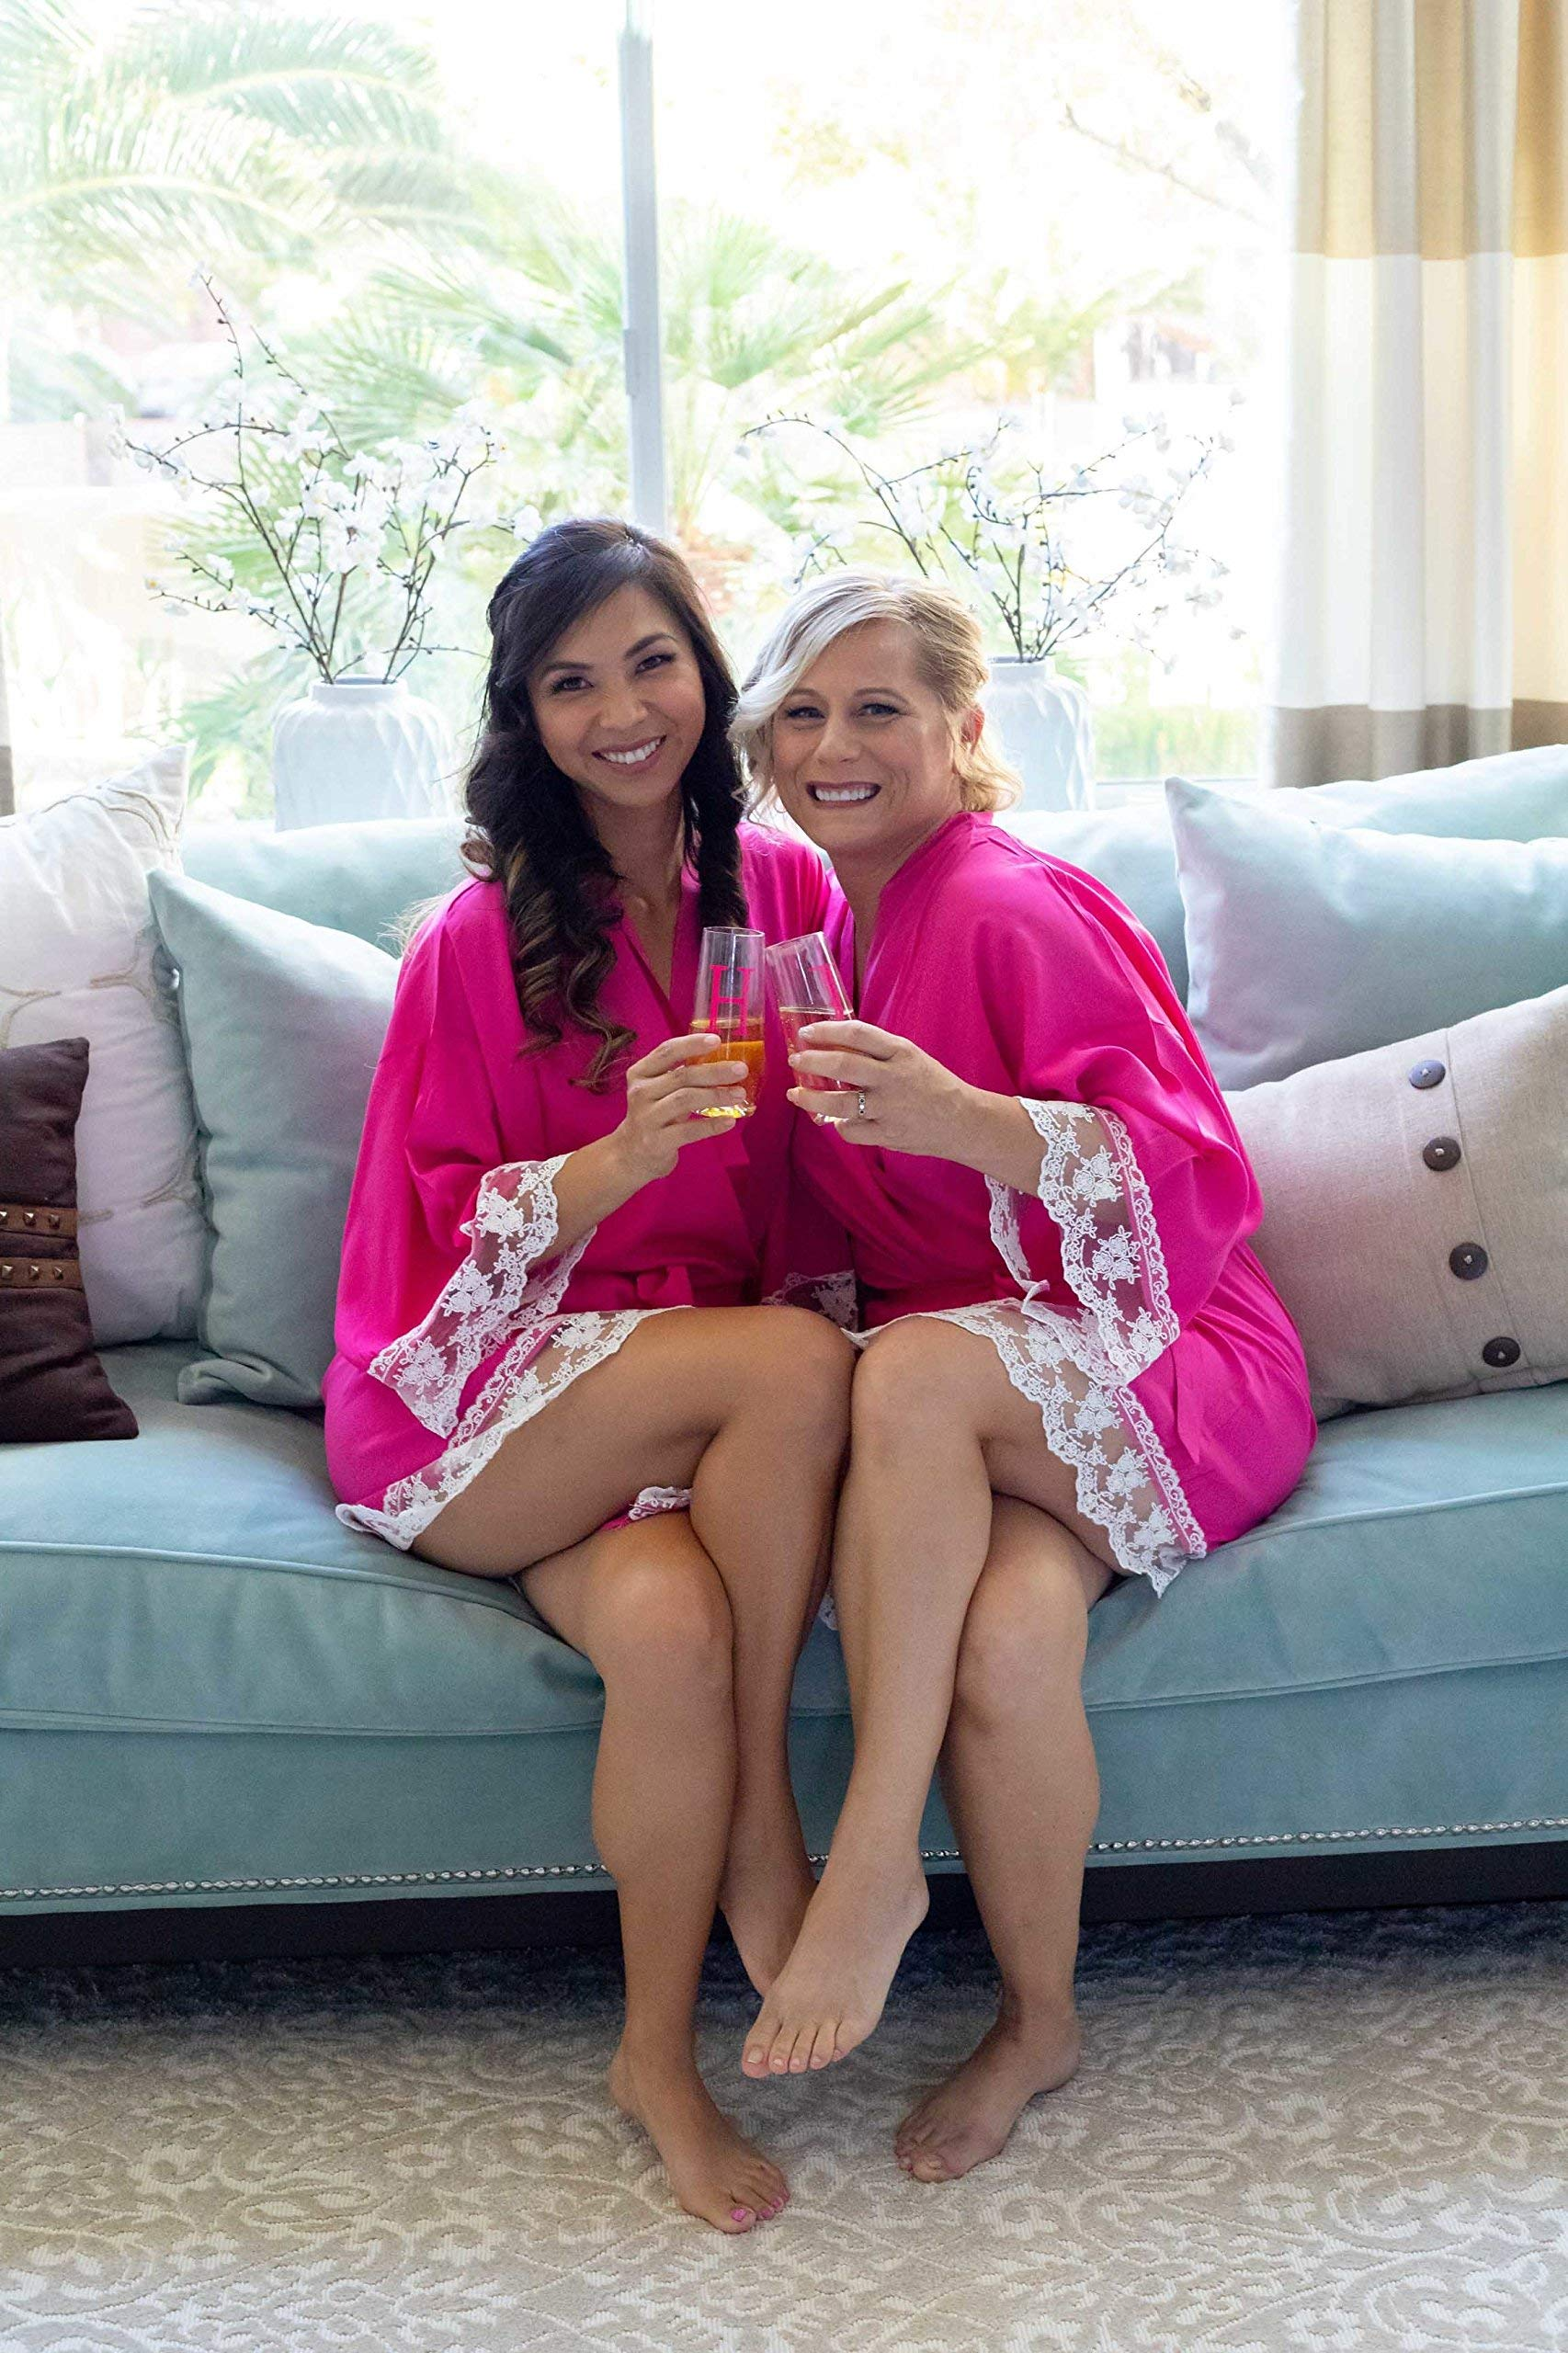 Hot Pink Cotton Bridesmaid Robes With White Lace Trim by Ella Winston